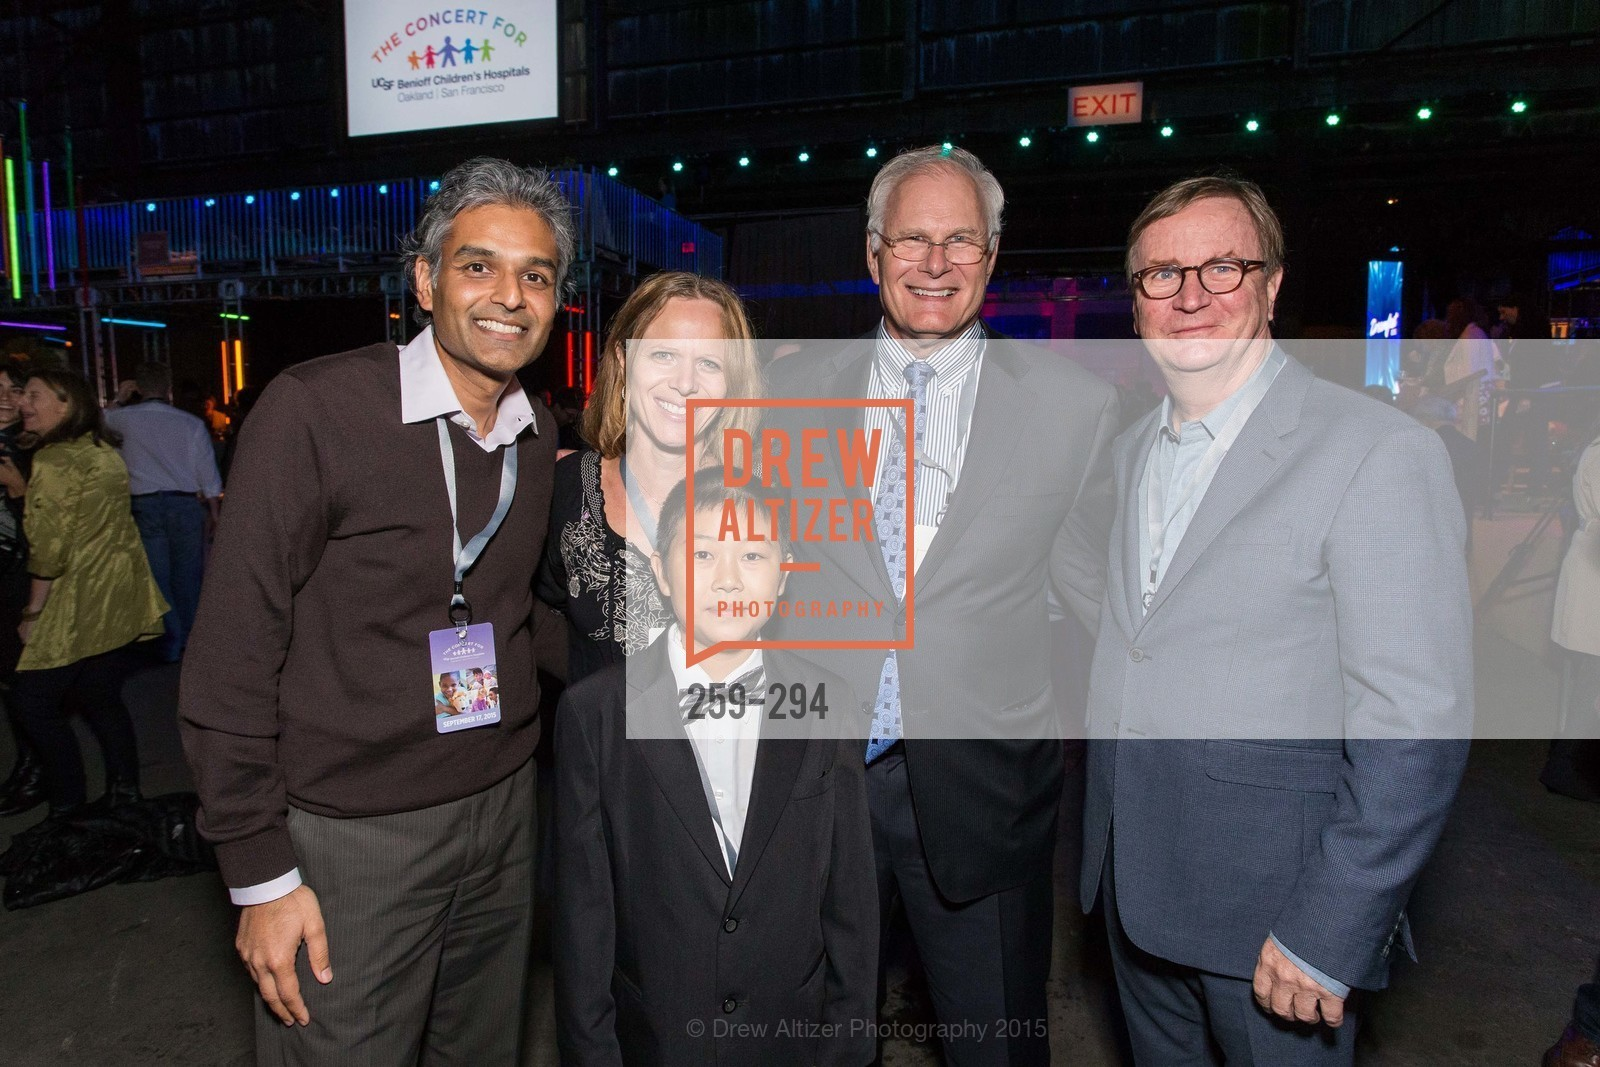 Anu Agrawal, Jennifer Michlitsch, Zhenkang Zhao, Mark Laret, Sam Hawgood, The Concert For UCSF Benioff Children's Hospital, Pier 70, September 17th, 2015,Drew Altizer, Drew Altizer Photography, full-service event agency, private events, San Francisco photographer, photographer California